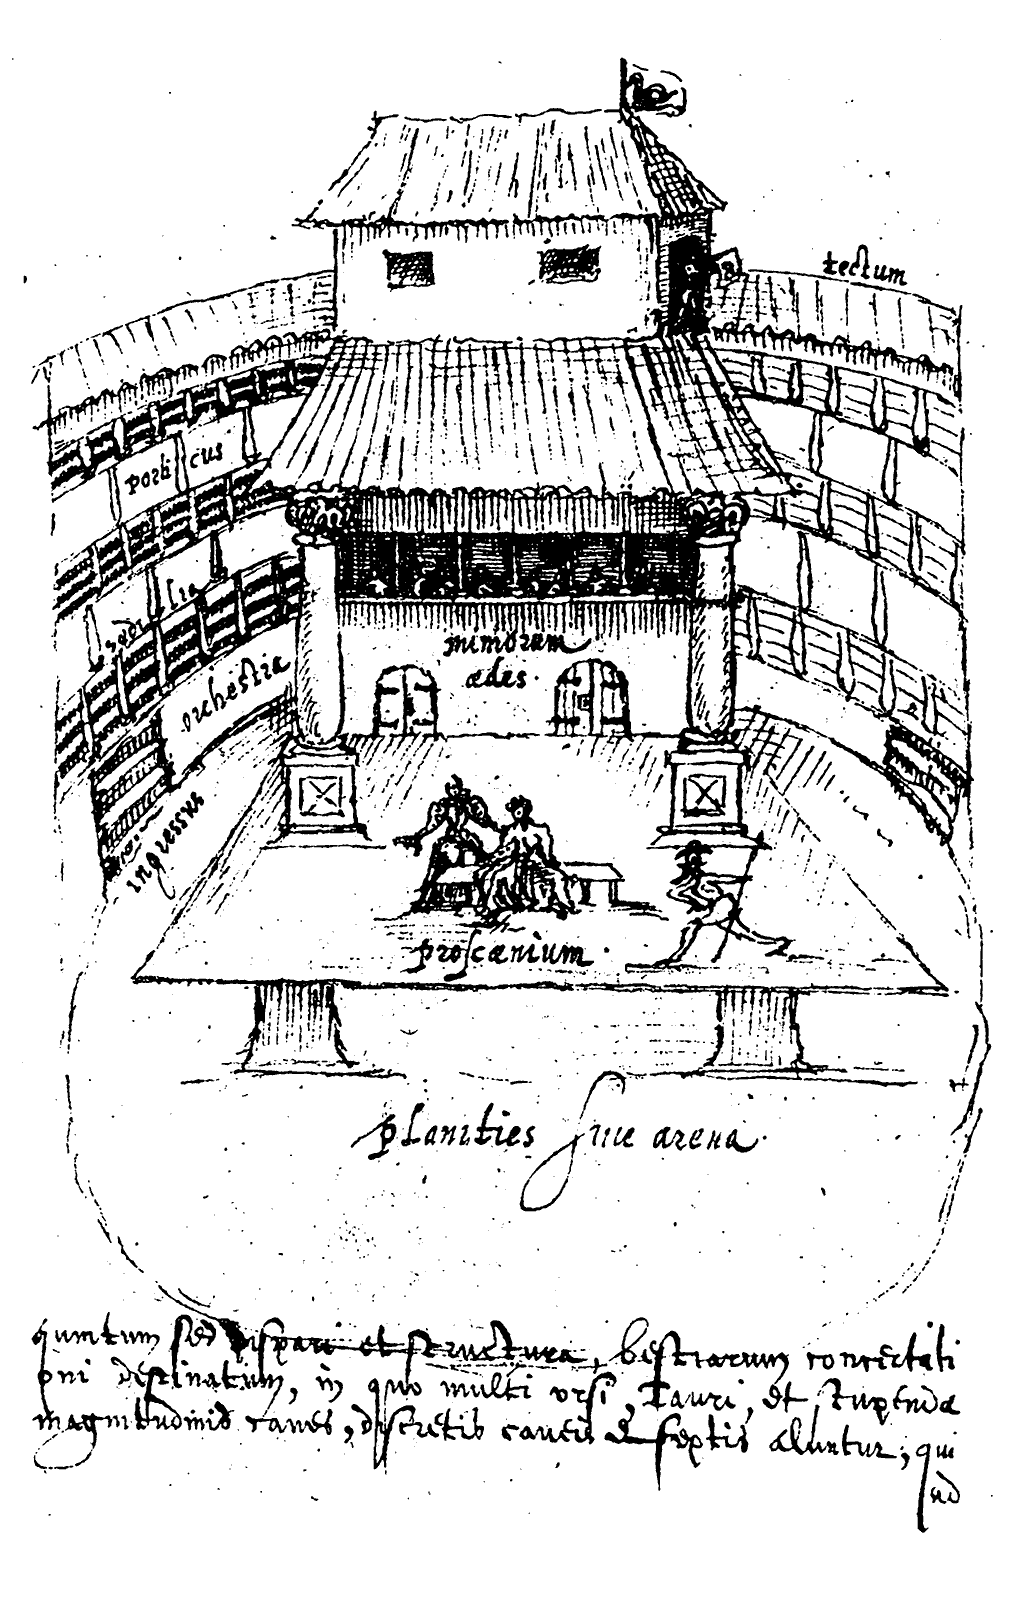 Sketch of the Swan Theatre by Johannes de Witt